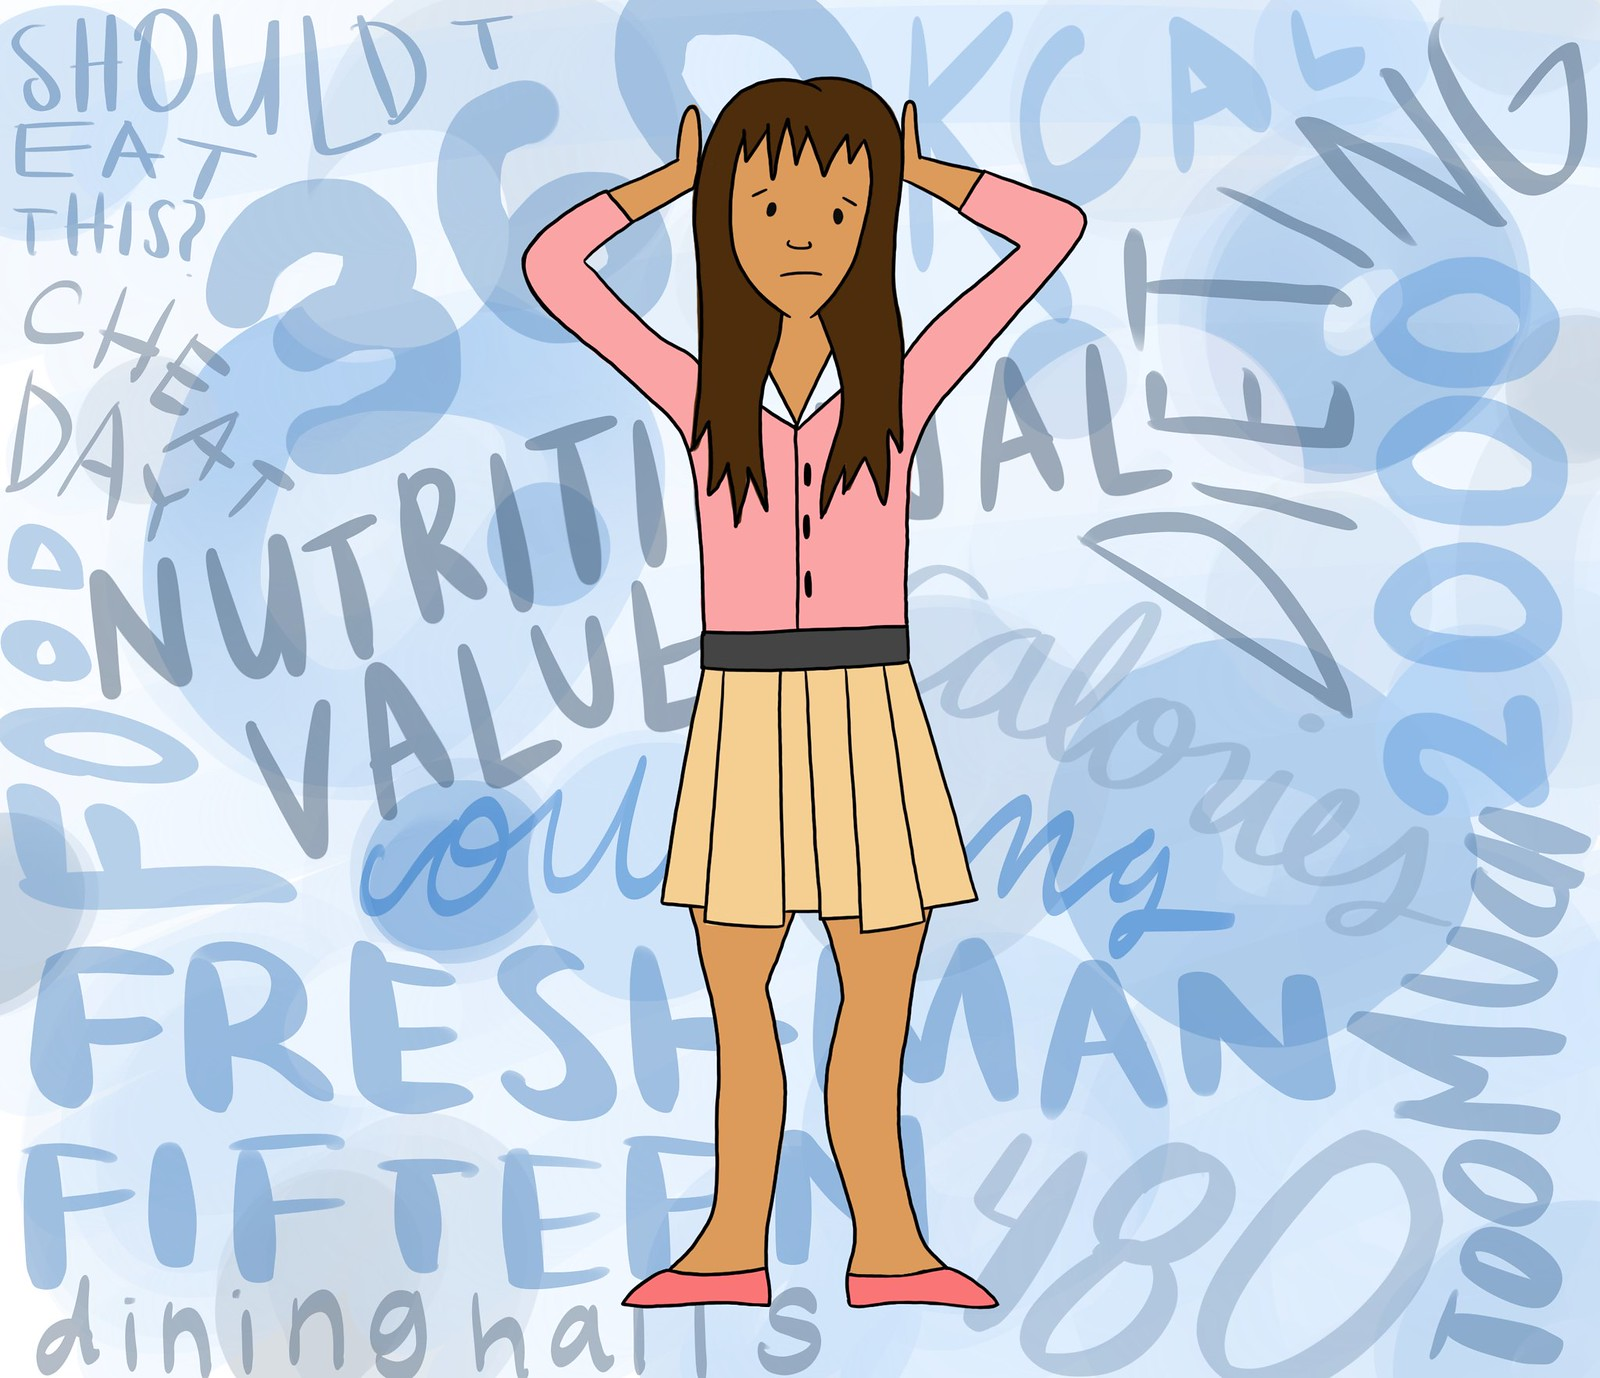 The Freshman 15: Calorie counting and disordered eating in college